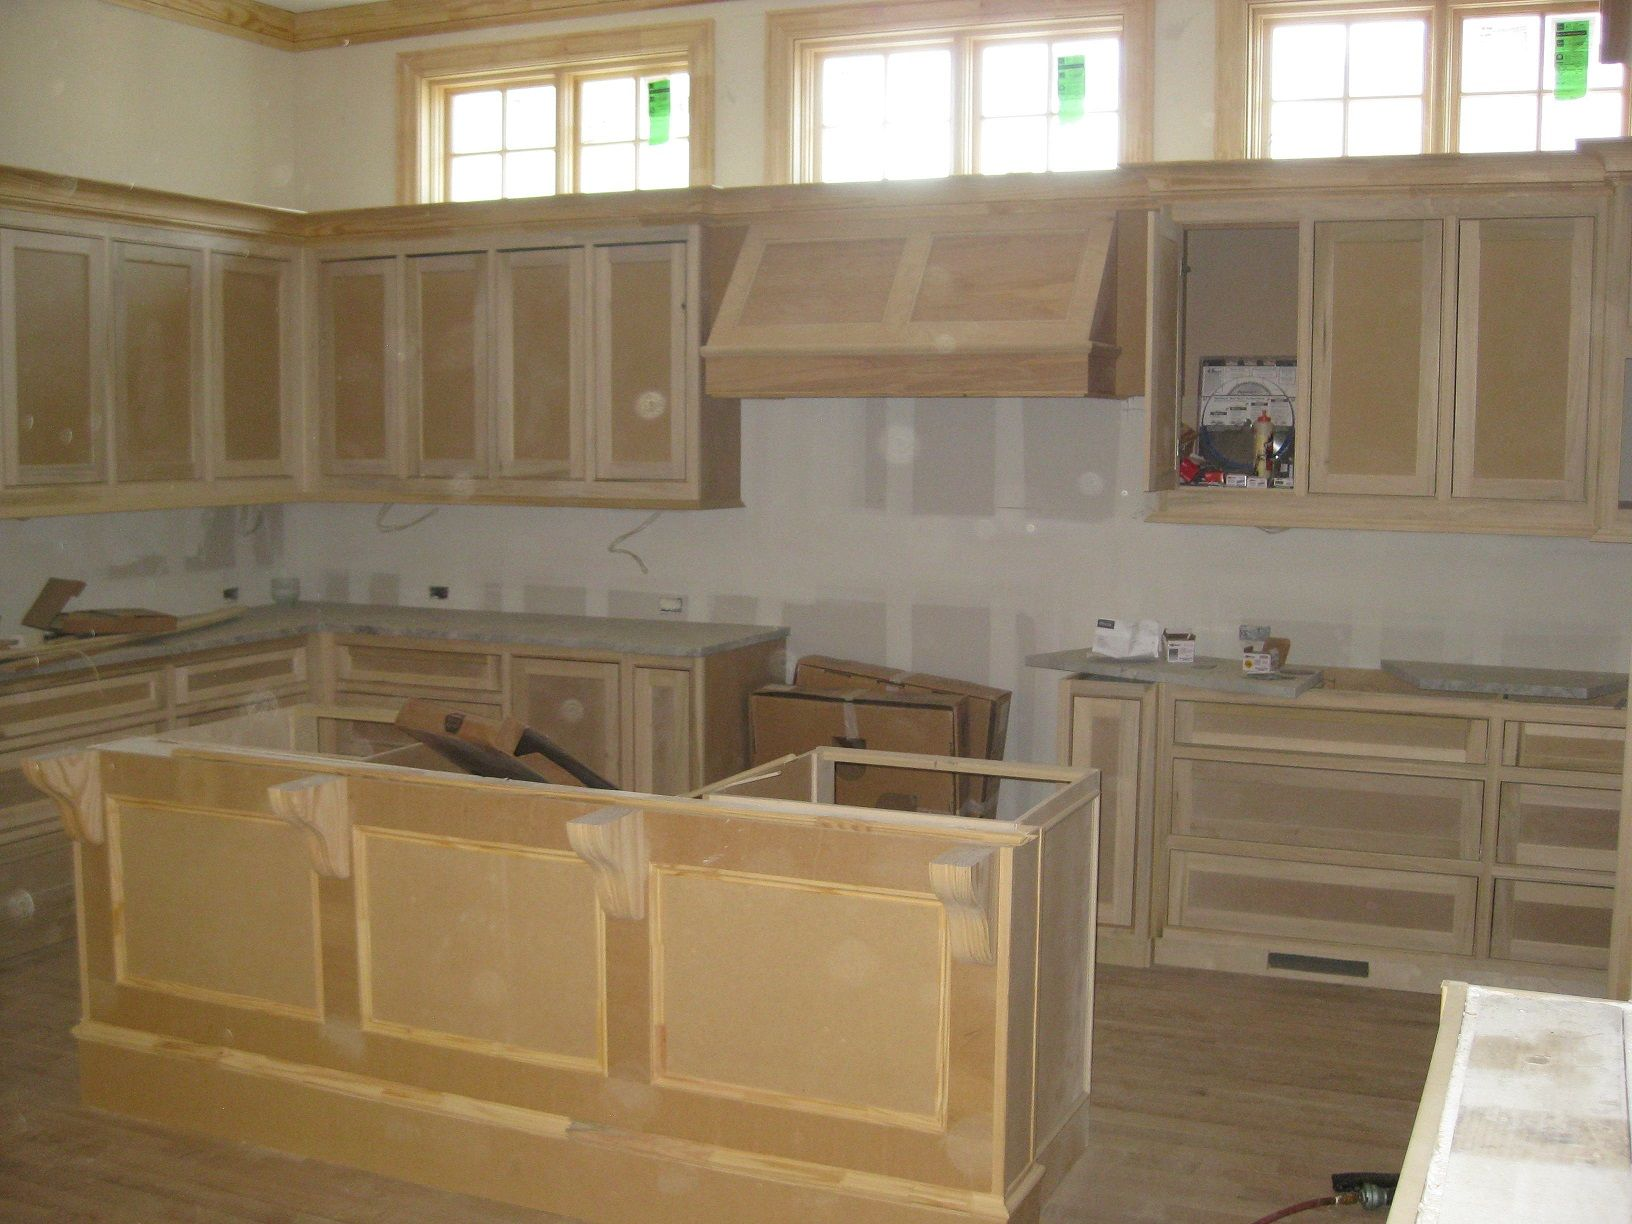 Luxury Custom Kitchen Kitchen Cabinets Ready For Paint Home Builders Home Construction Colonial Style Homes